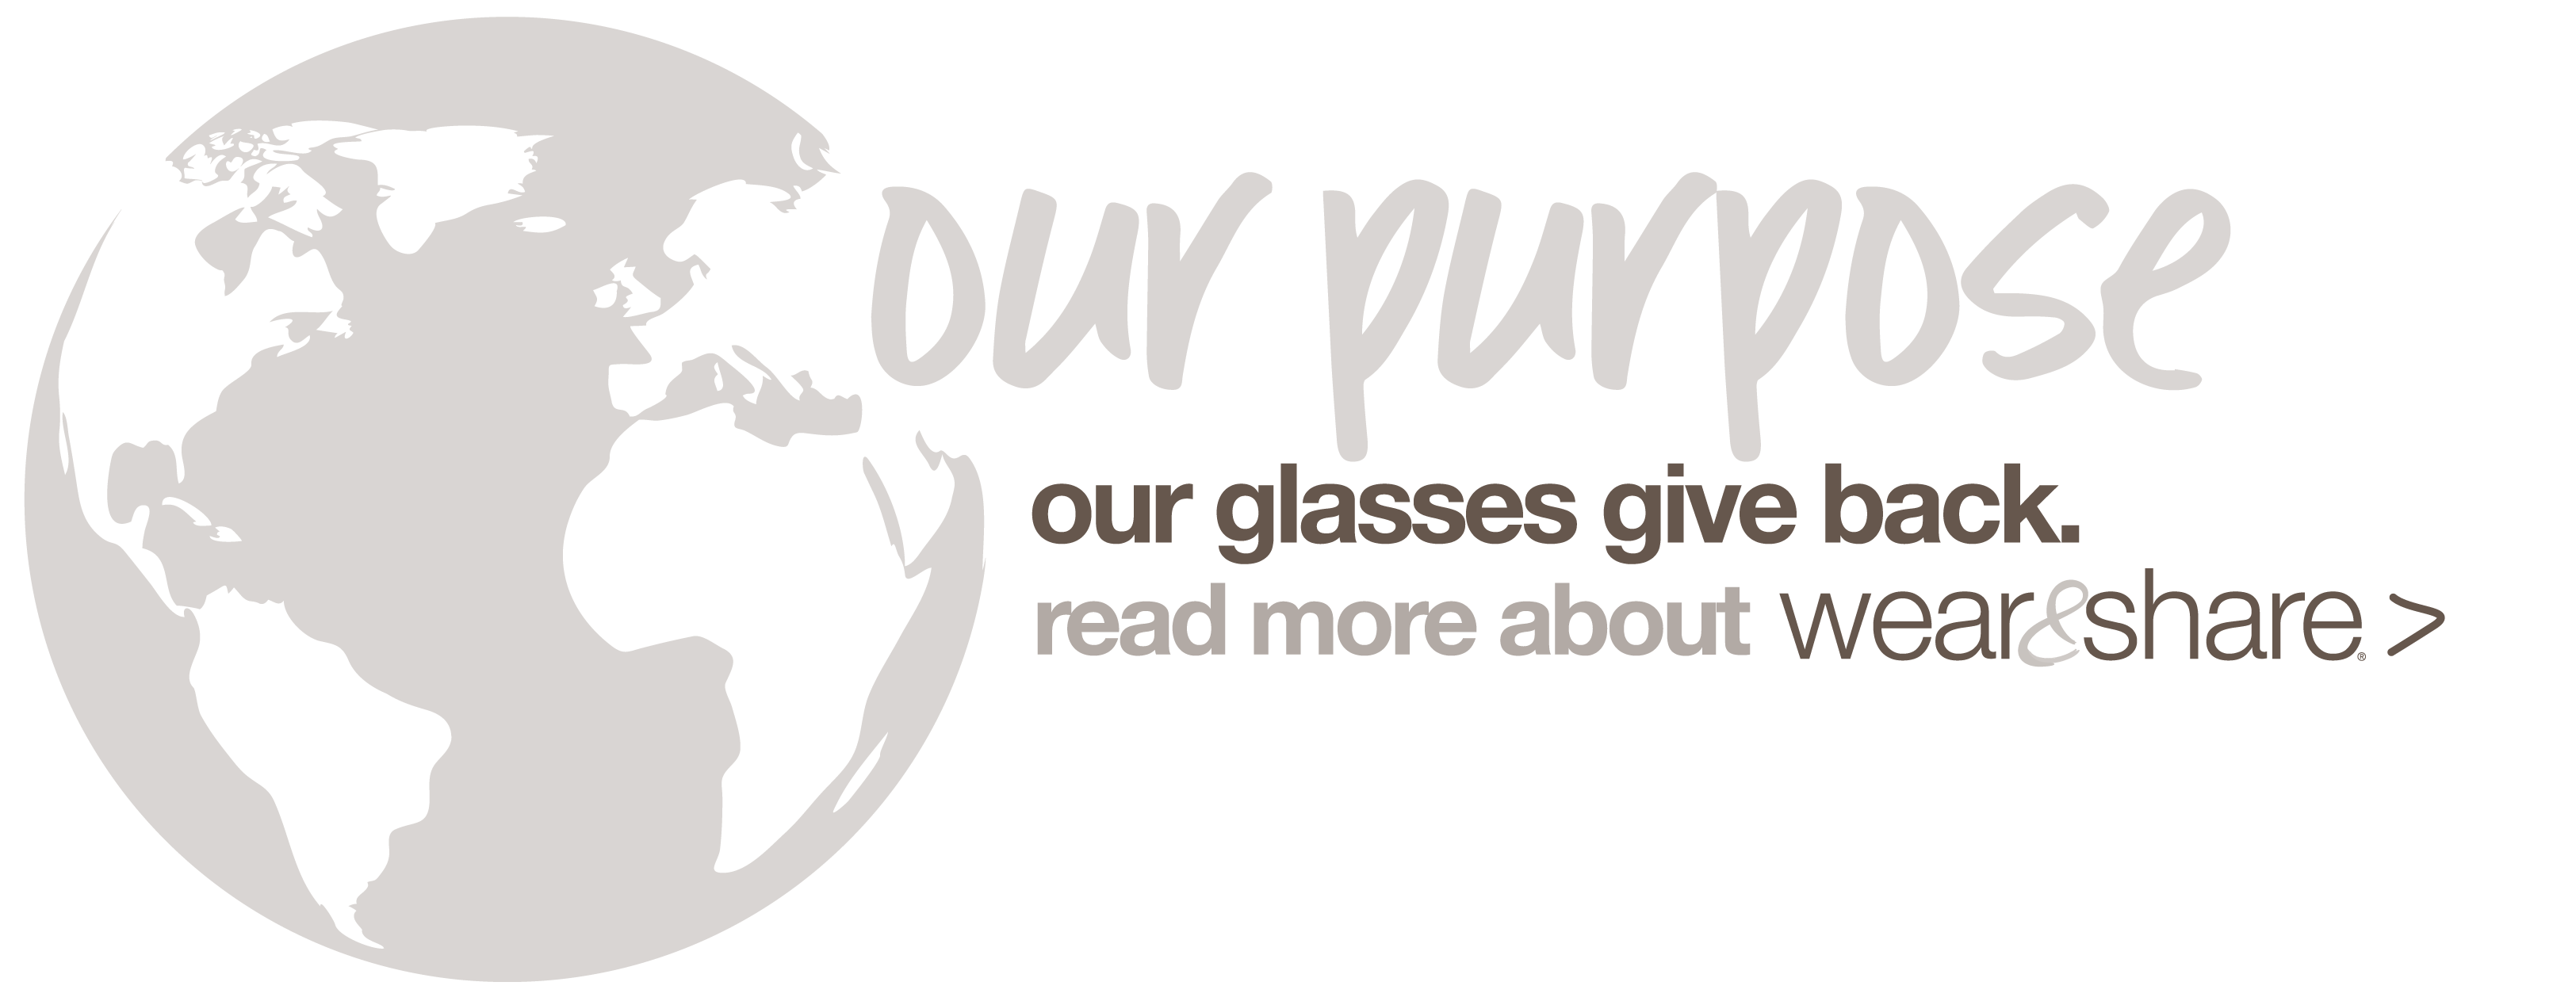 our purpose - our glasses give back, read more about Wear and Share